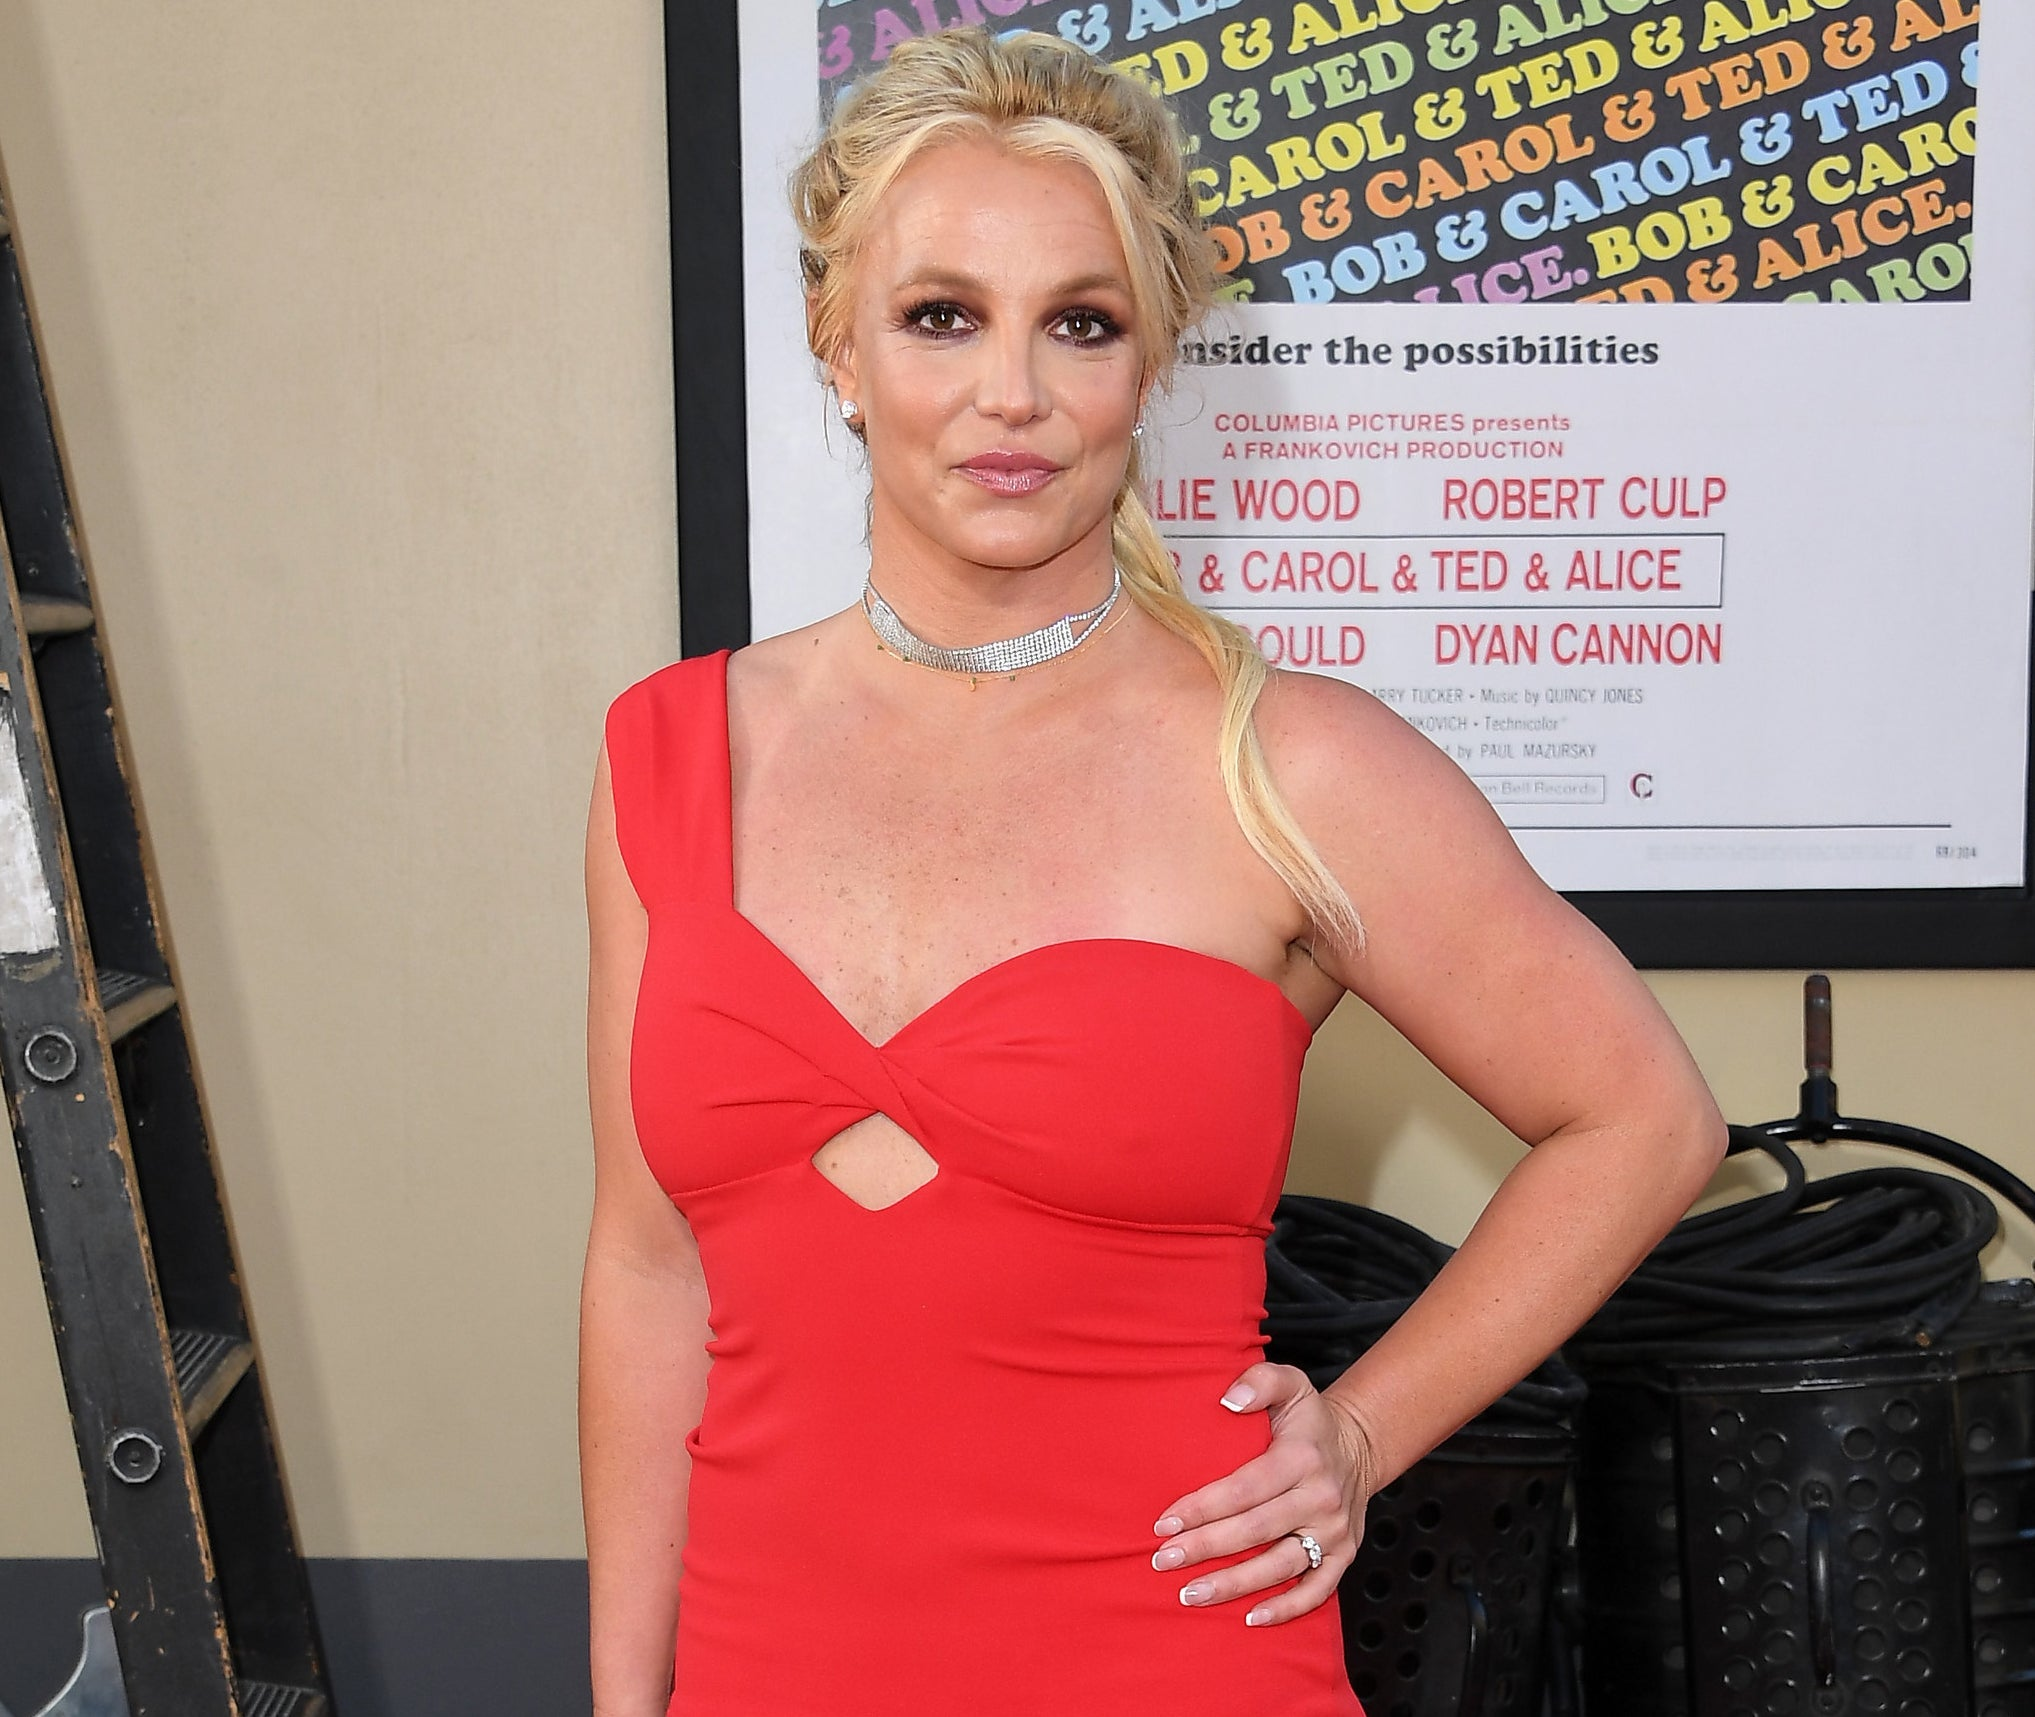 Britney wears a red one shoulder dress while posing at an event